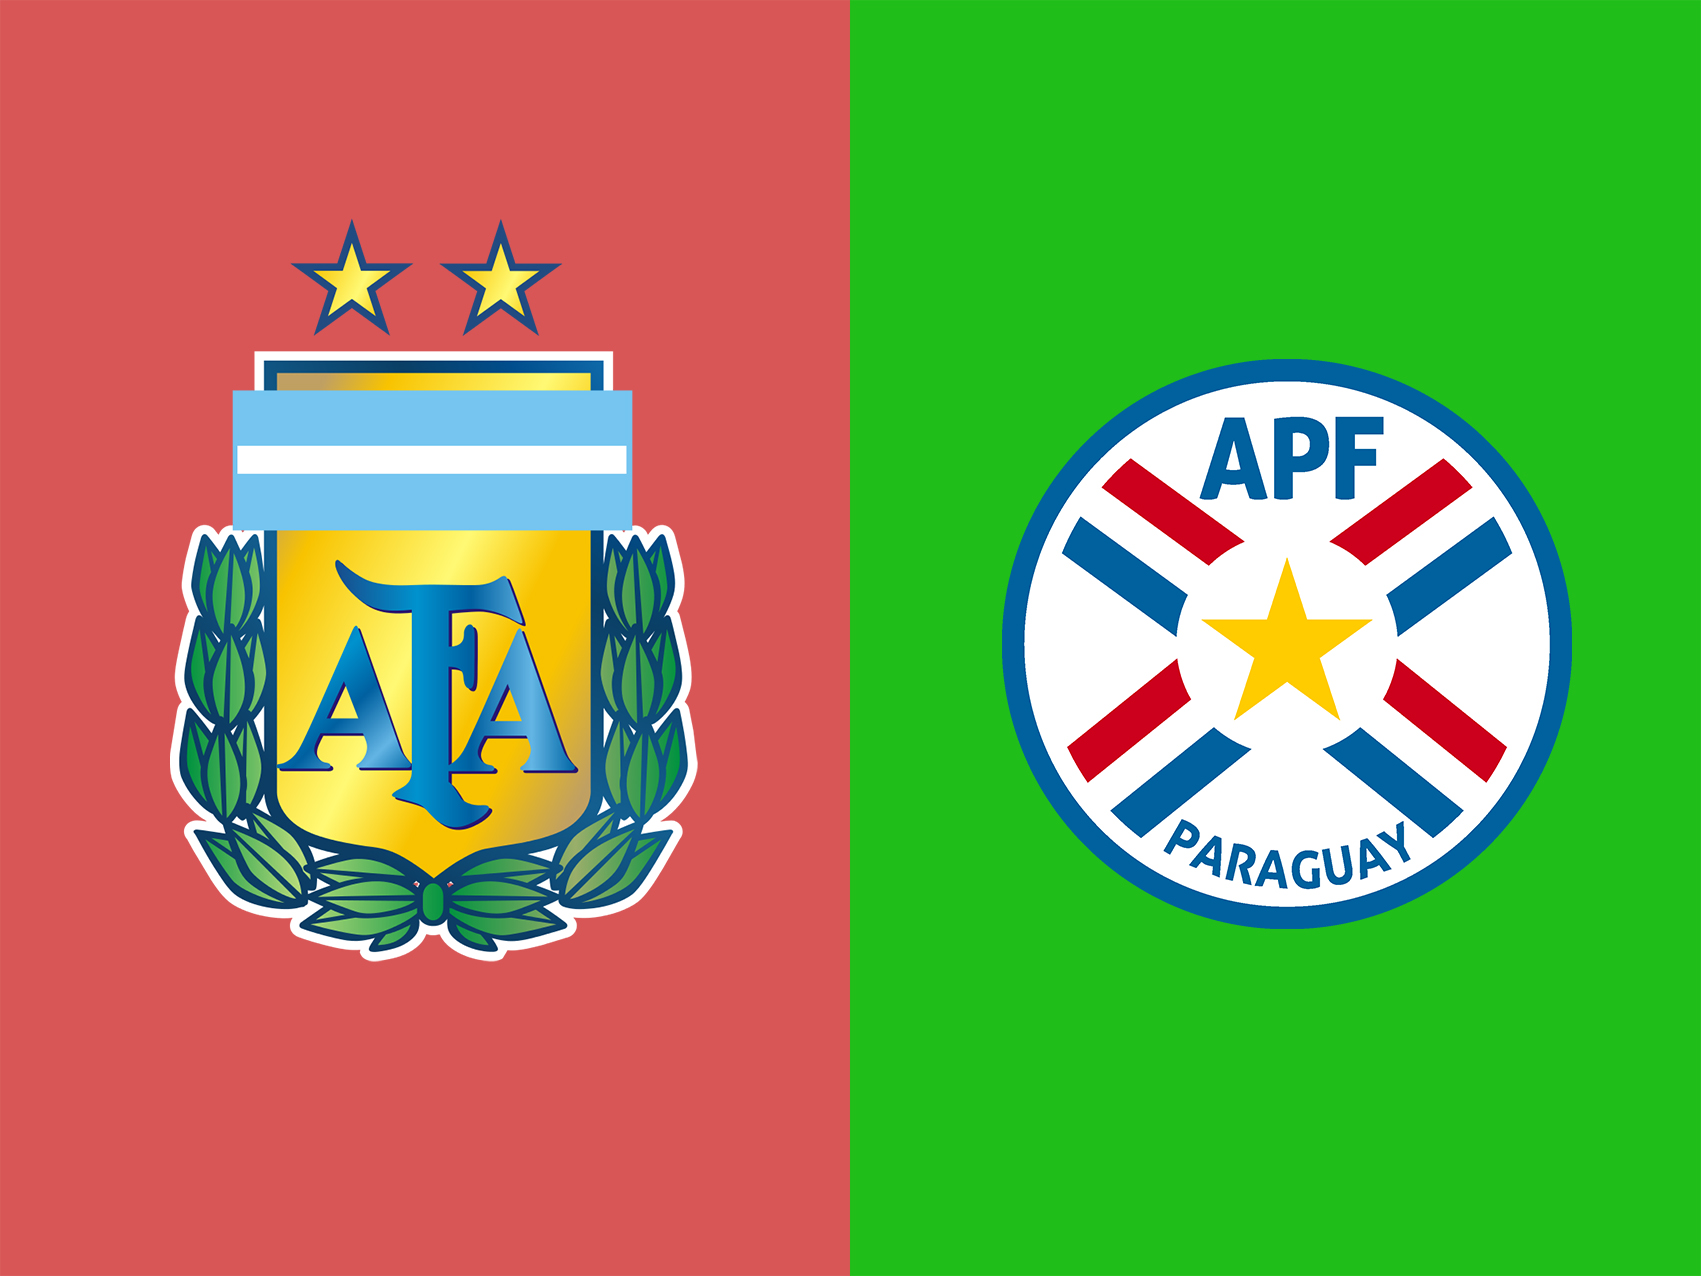 argentina-vs-paraguay-soi-keo-cup-vo-dich-nam-my-20-06-khat-khao-chay-bong-0